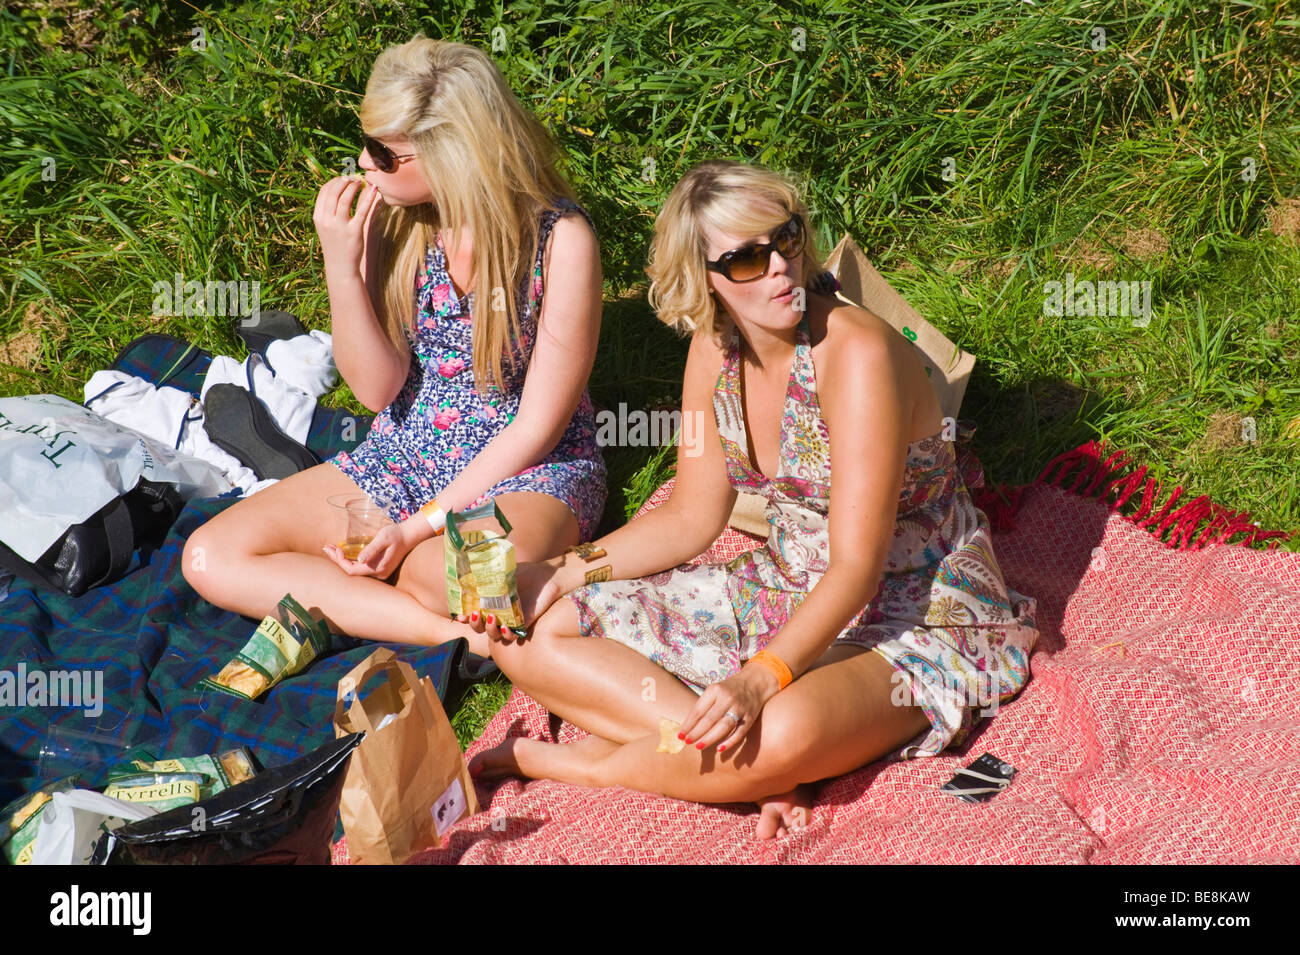 Young women picnicking on grass in sunshine at Ludlow Food Festival Shropshire England UK - Stock Image